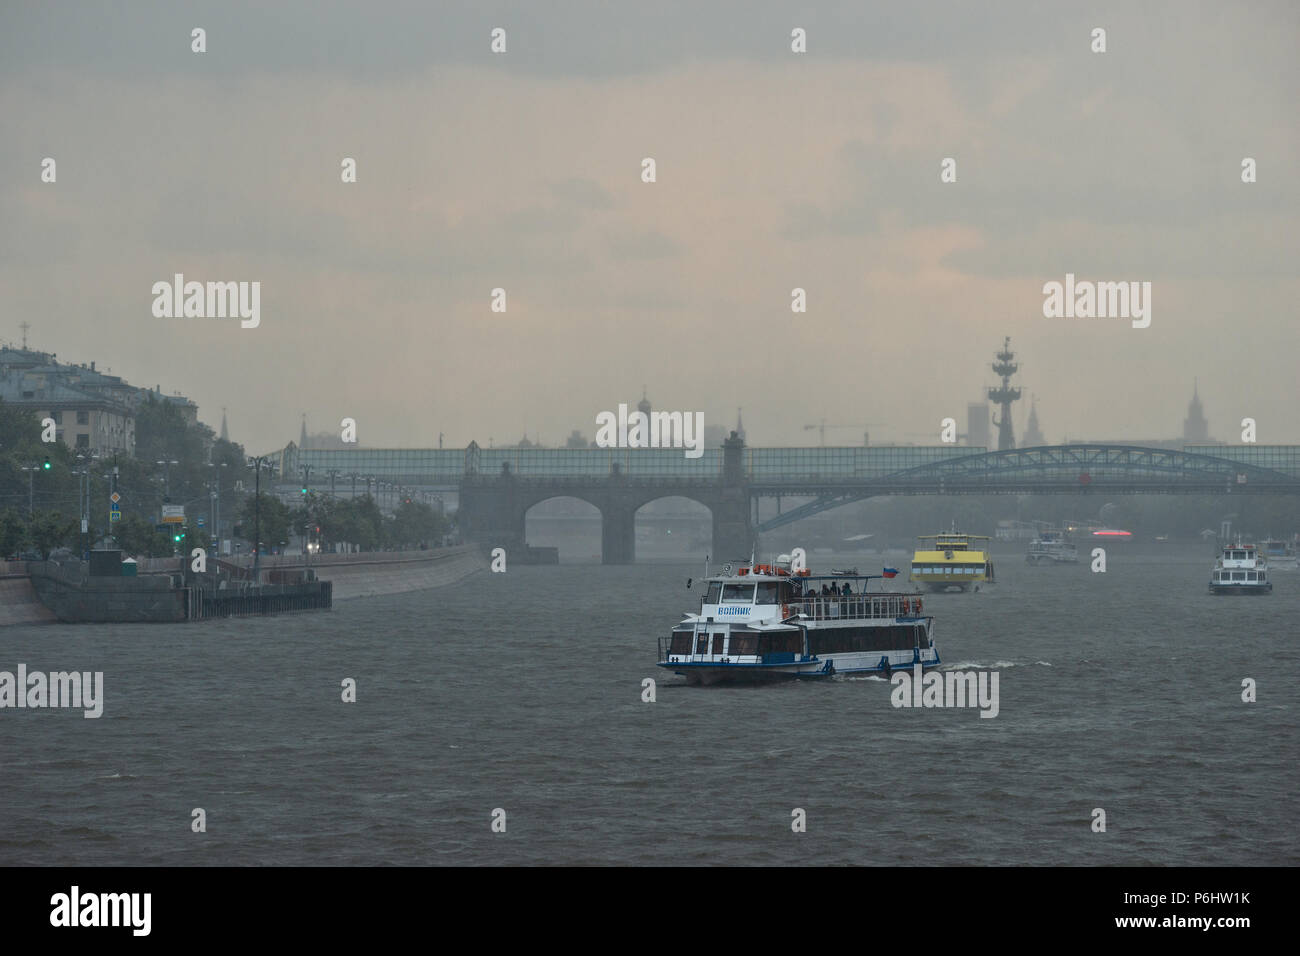 Russian weather, Moscow. Saturday, June 30, 2018. Rain or no rain leisure boat navigation continues up and down the Moscow-river. - Stock Image